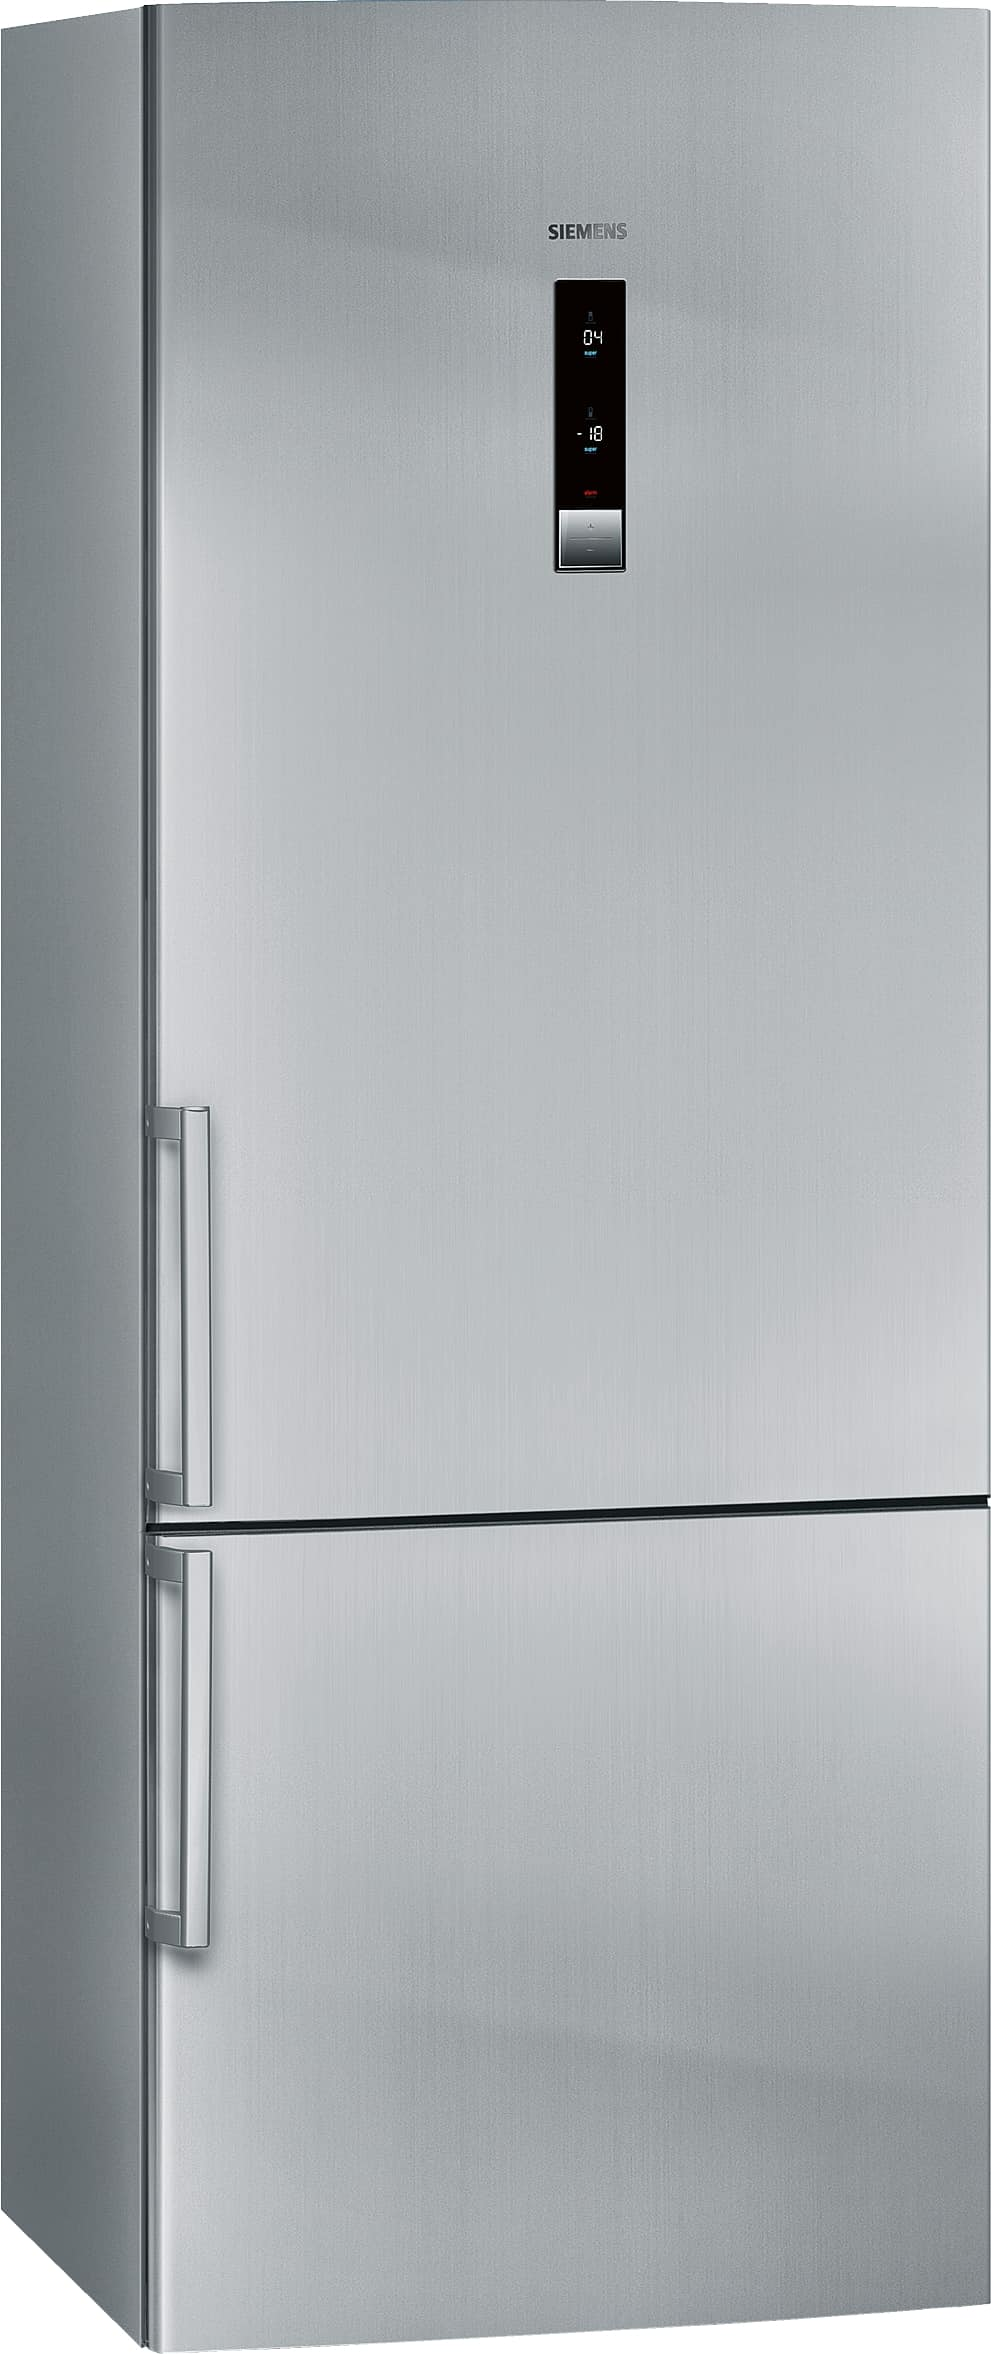 watch door using youtube control french double lg doors the refrigerator black panel